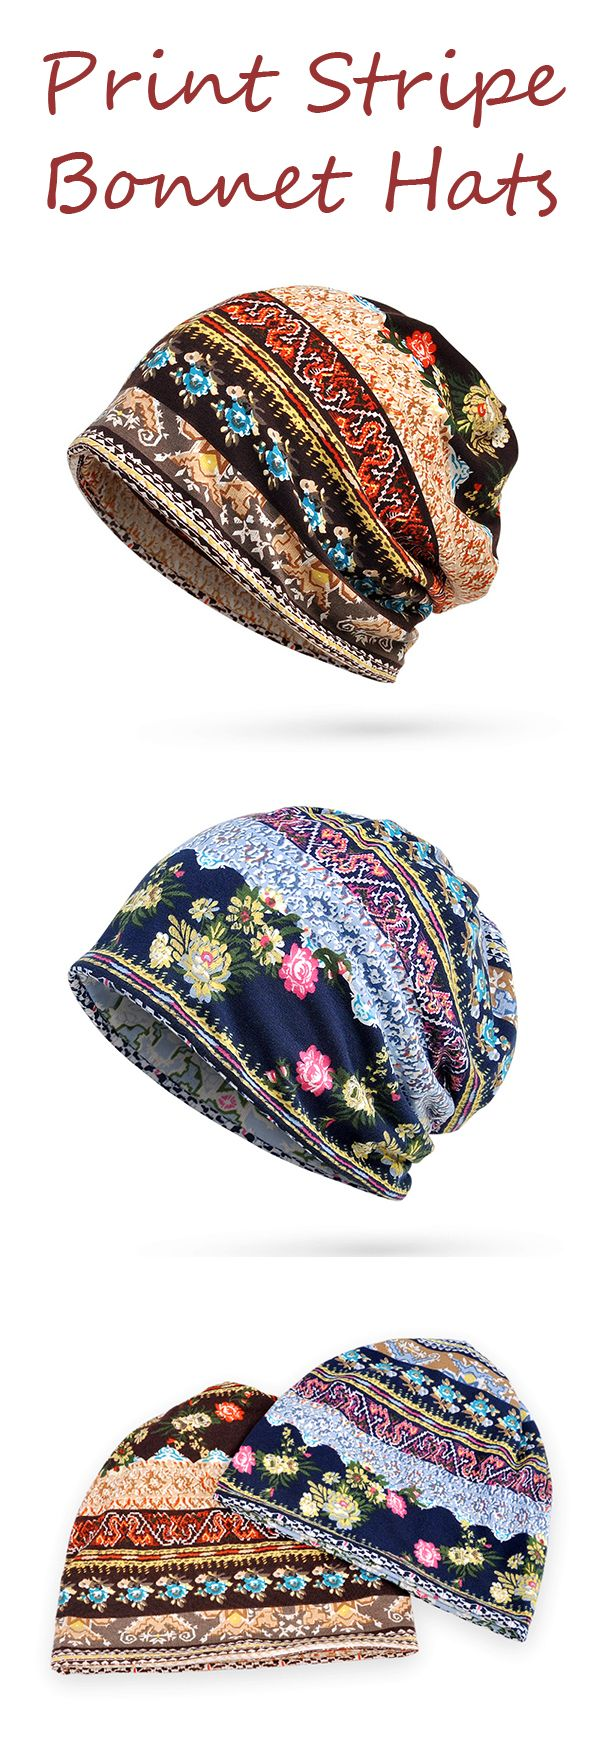 08b09880957 US  6.80 Women Cotton Print Stripe Bonnet Hats Casual Outdoor Sun Cap  Multi-function Towel